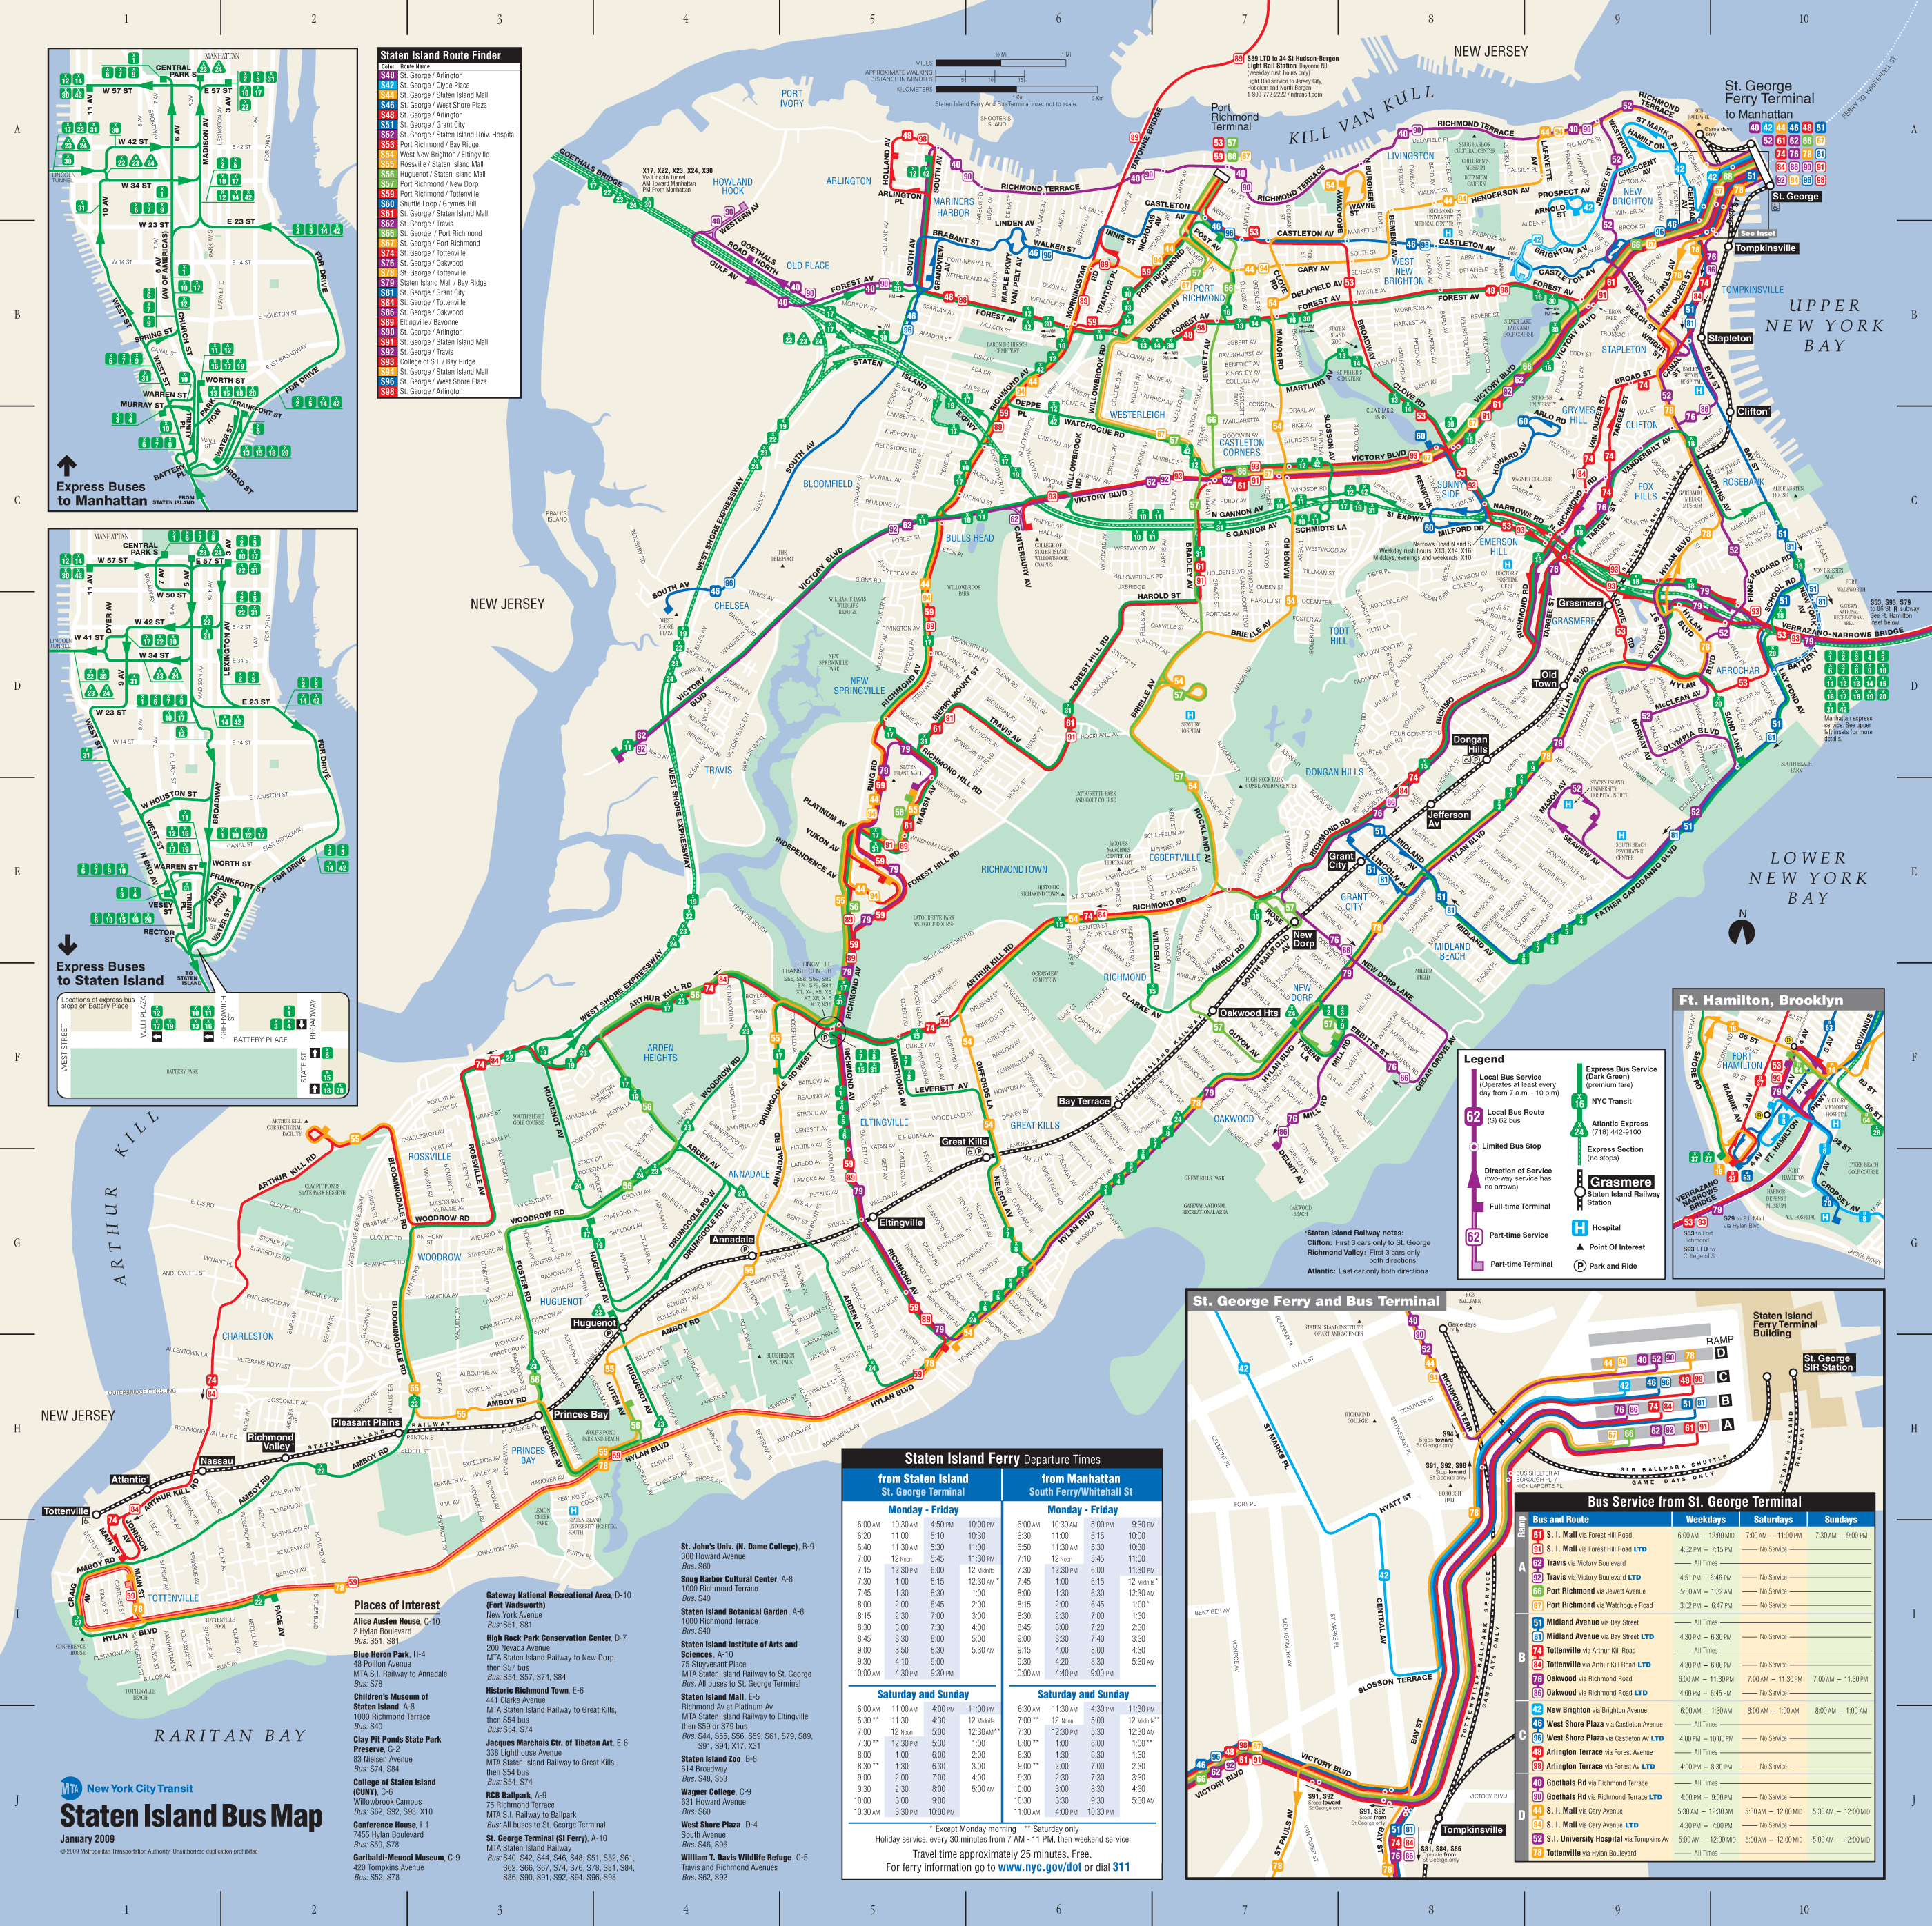 Staten Island Bus Map File:Staten island bus map.png   The Peopling of New York City Staten Island Bus Map